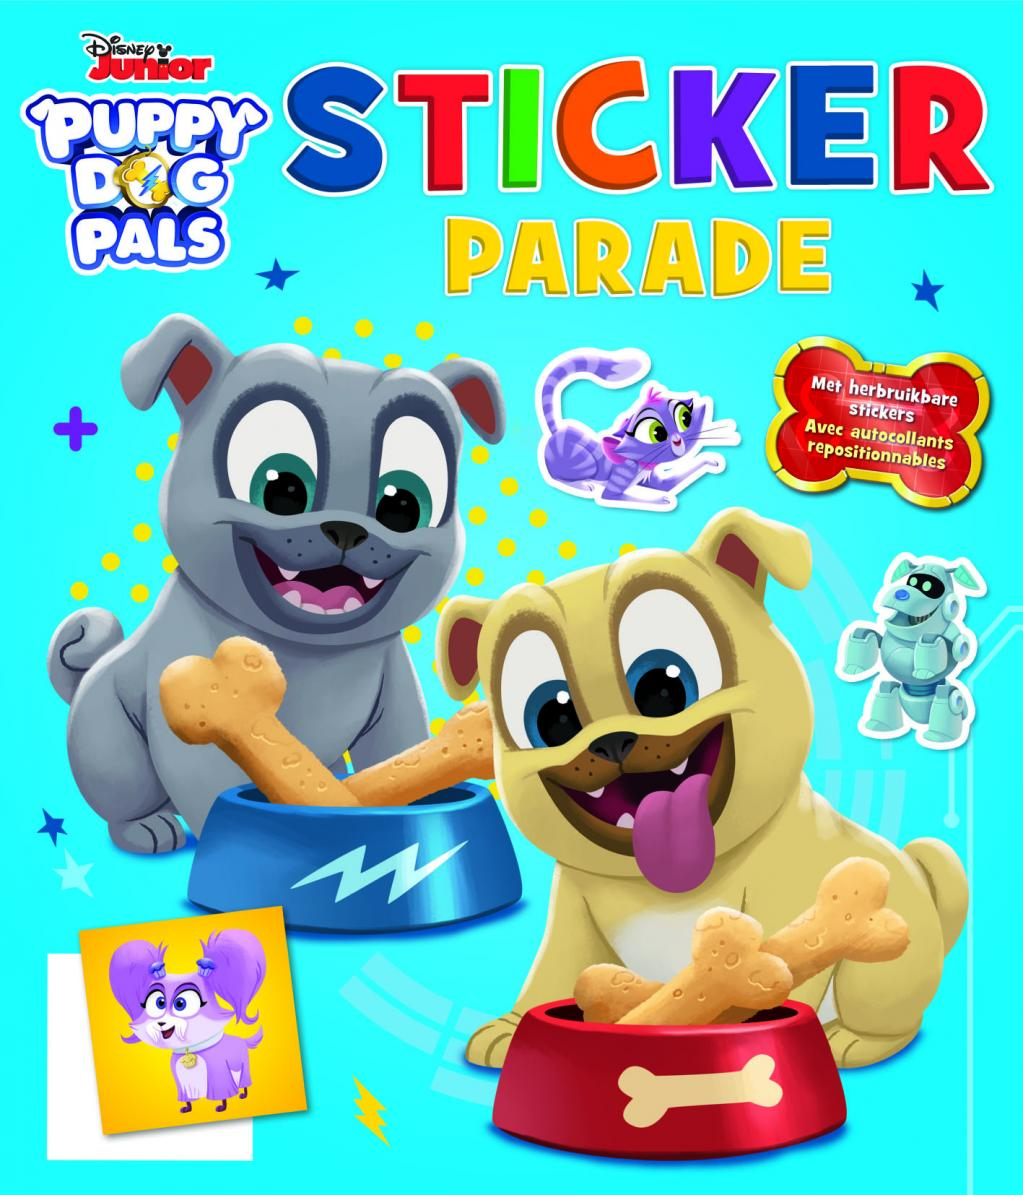 Disney - Sticker Parade - Puppy Dog Pals